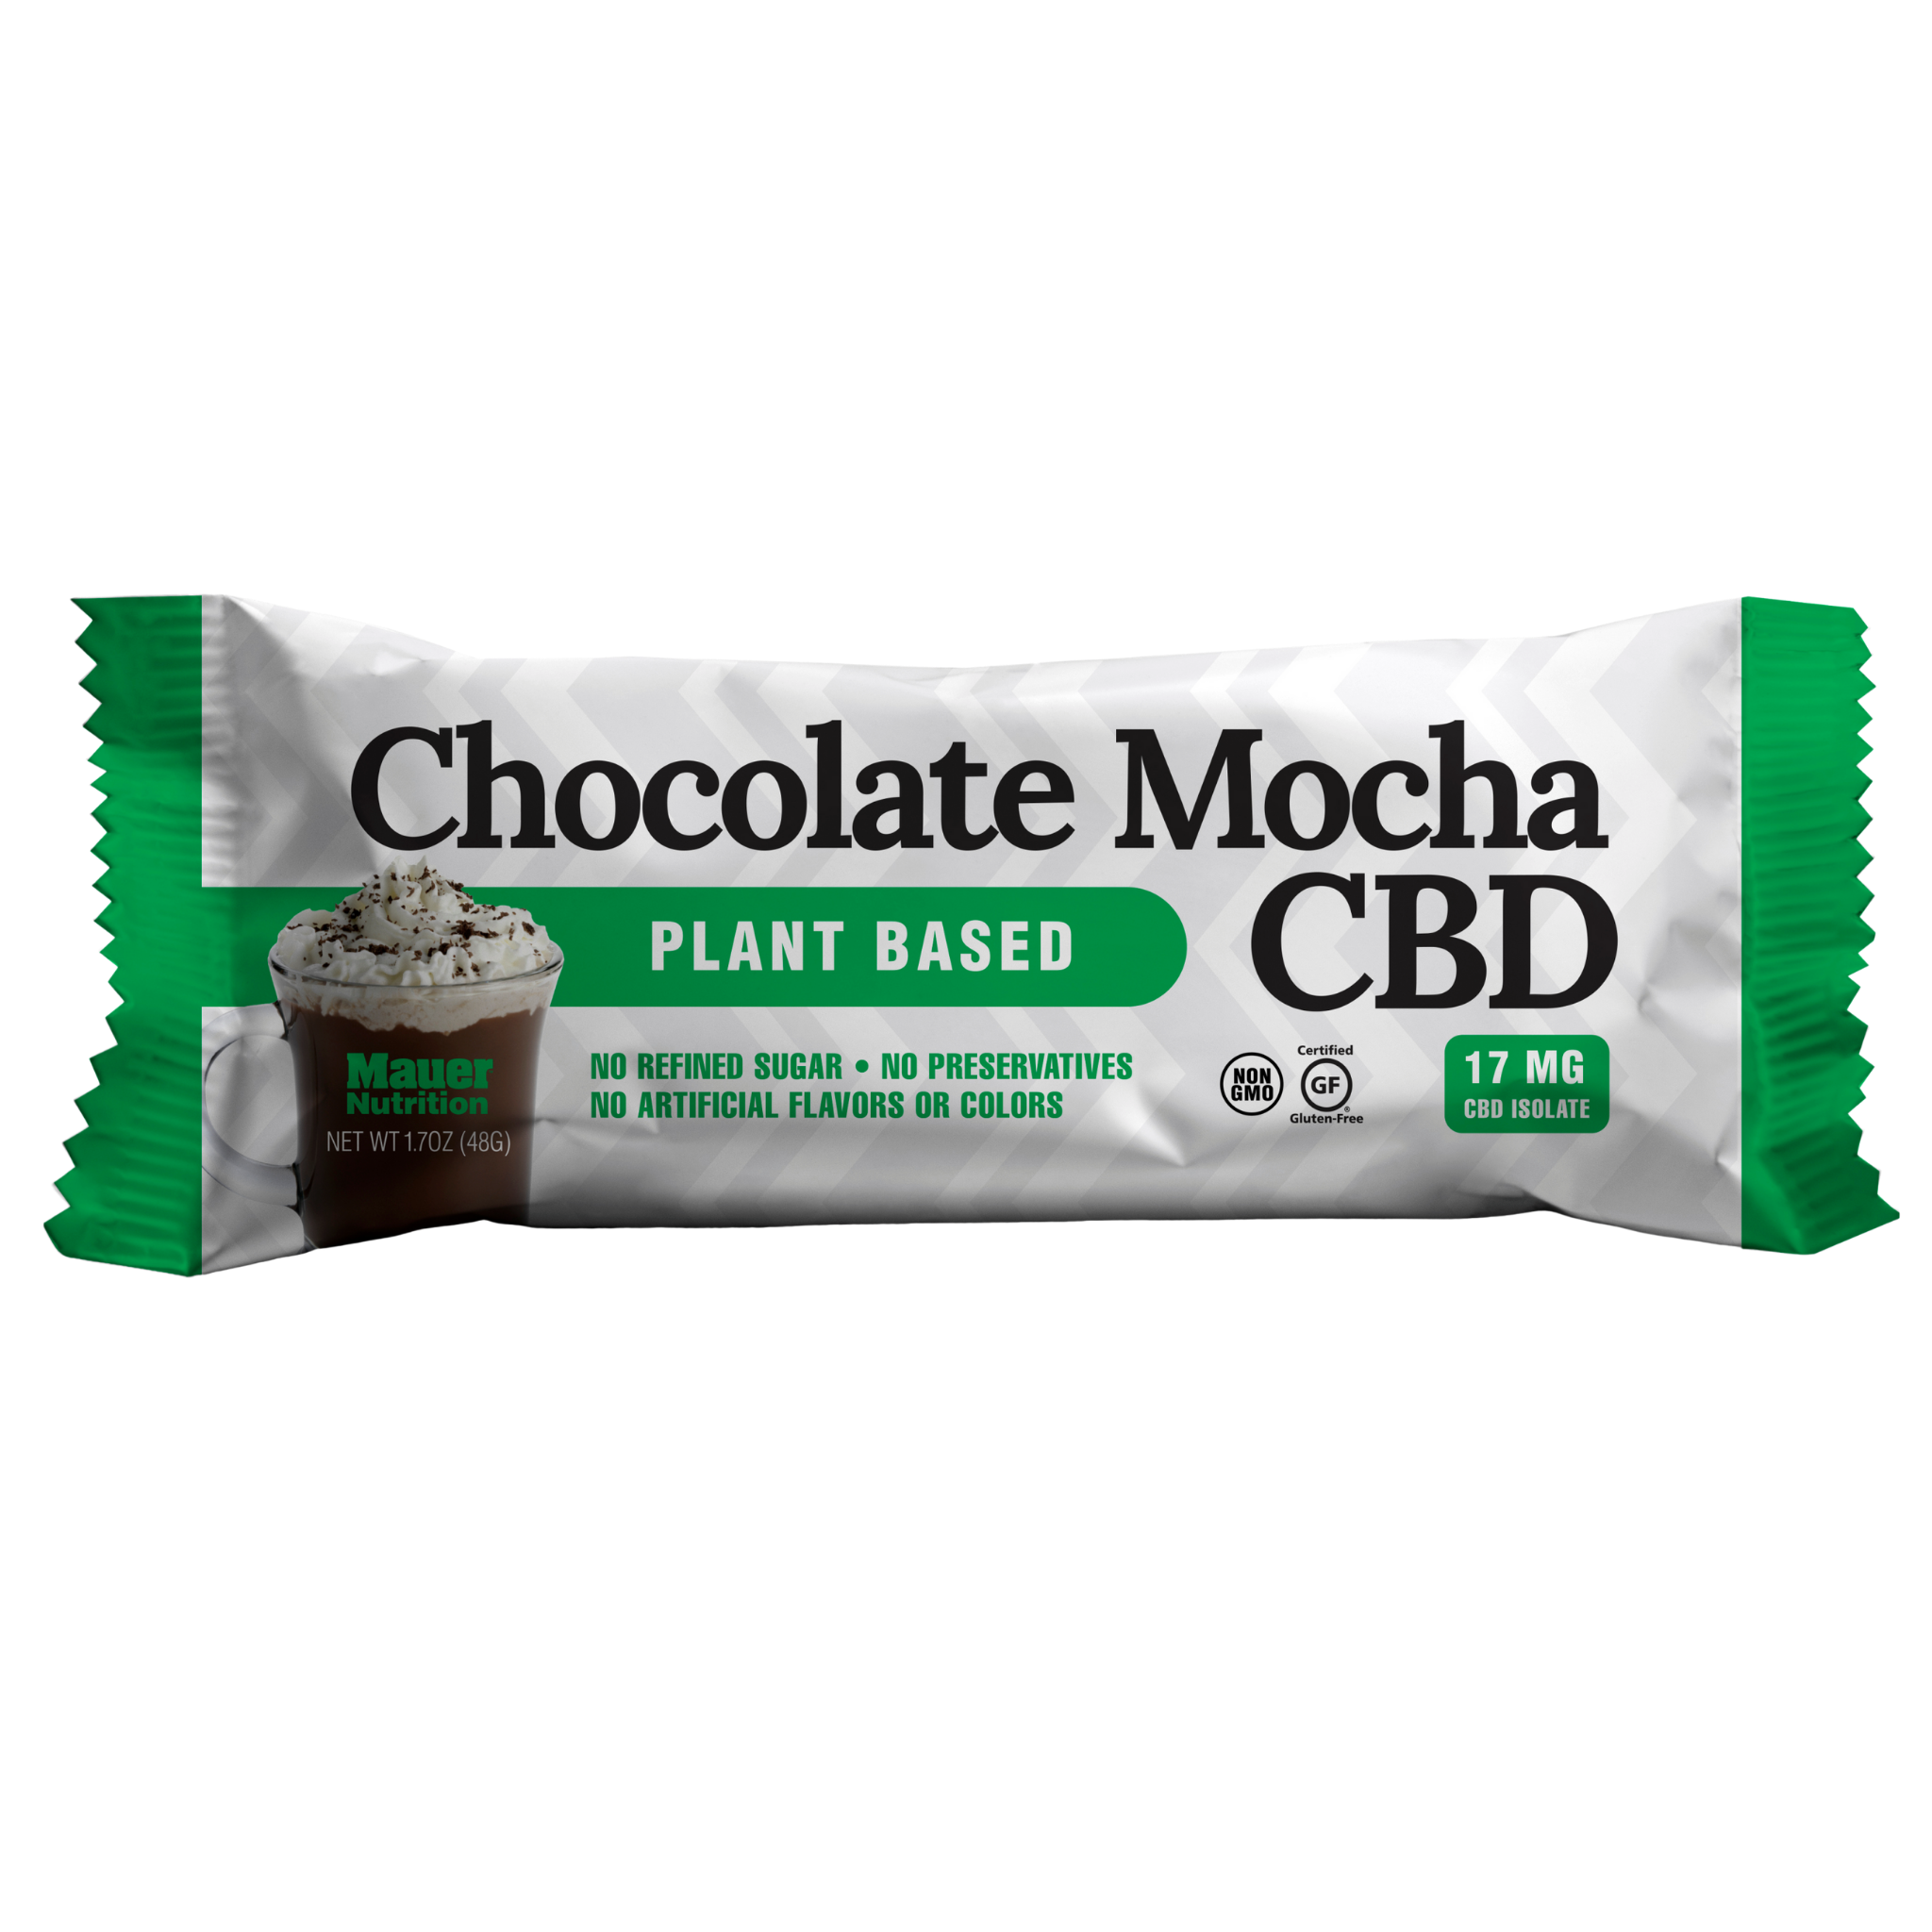 Chocolate Mocha CBD